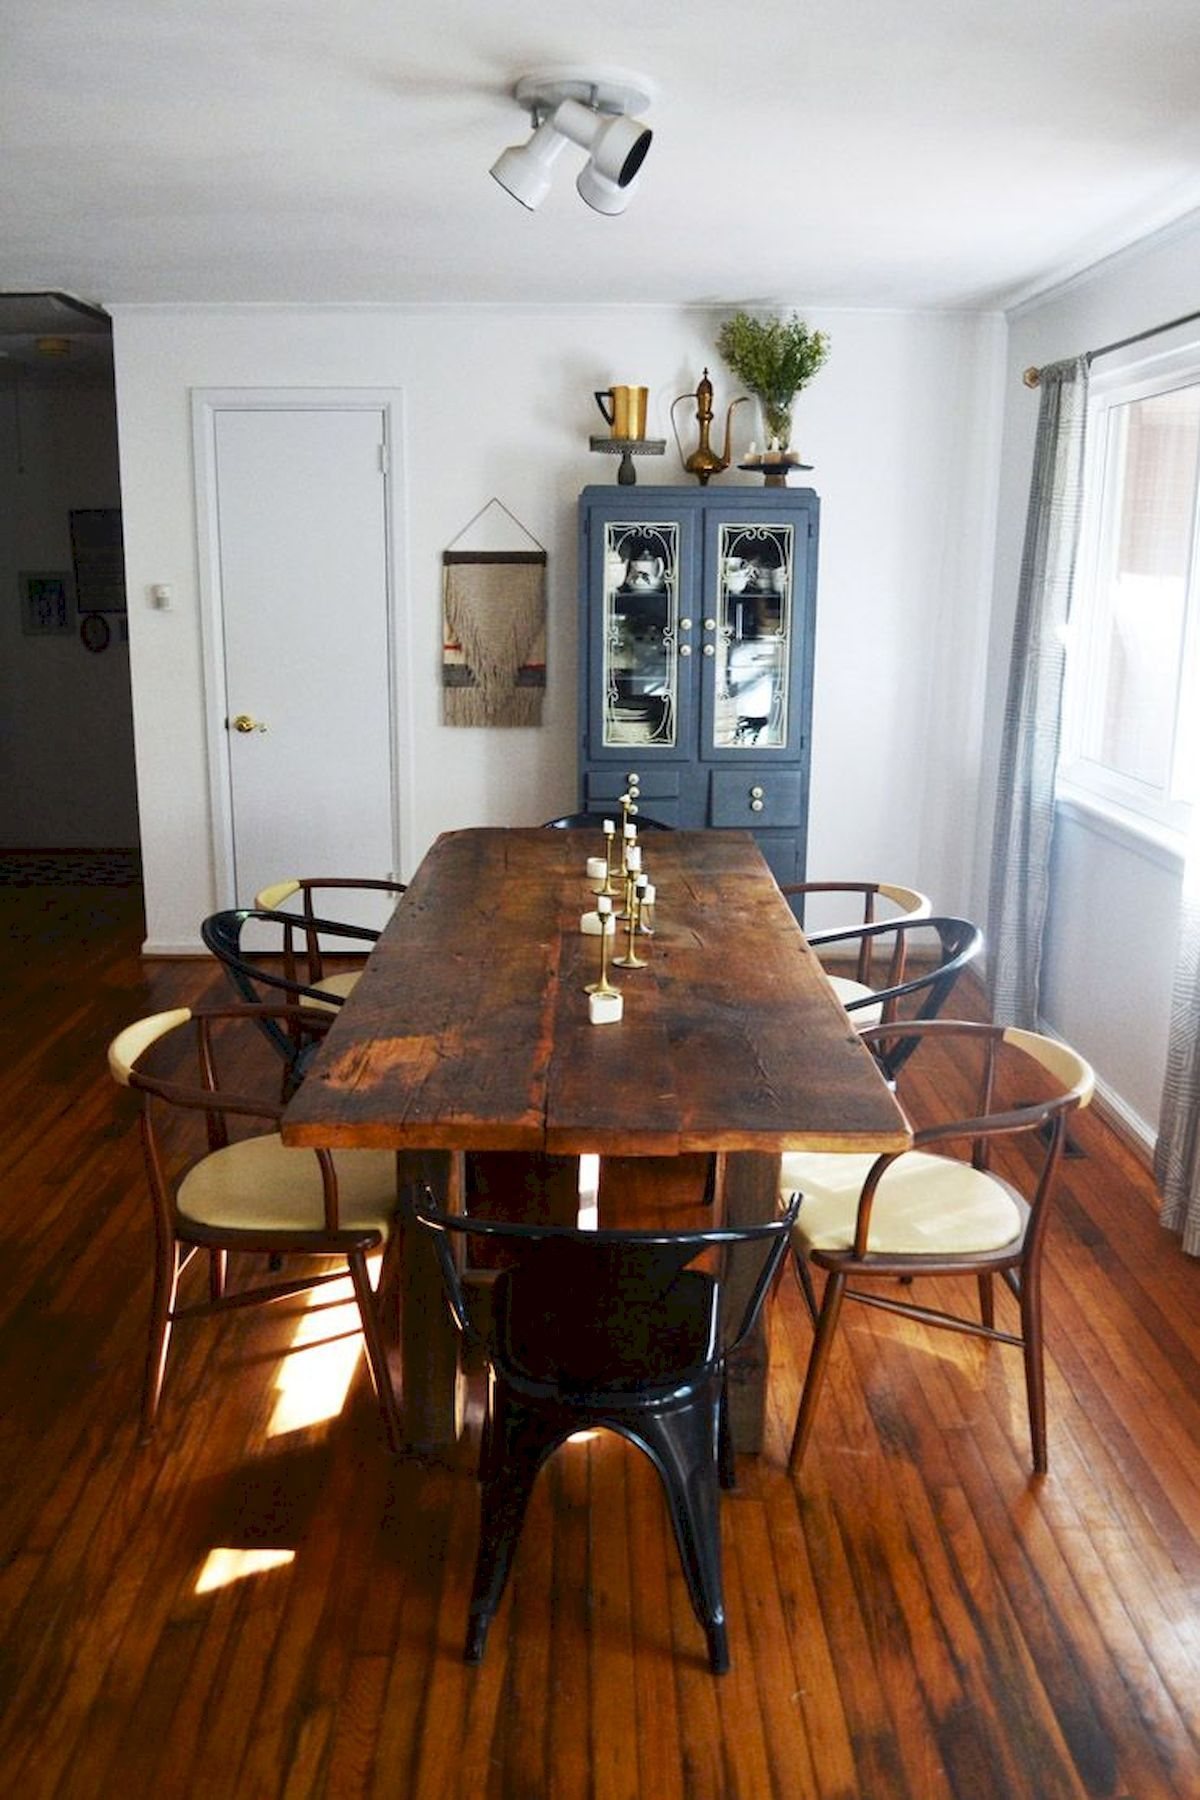 52 beautiful small dining room ideas on a budget dining - Small dining room ideas on a budget ...